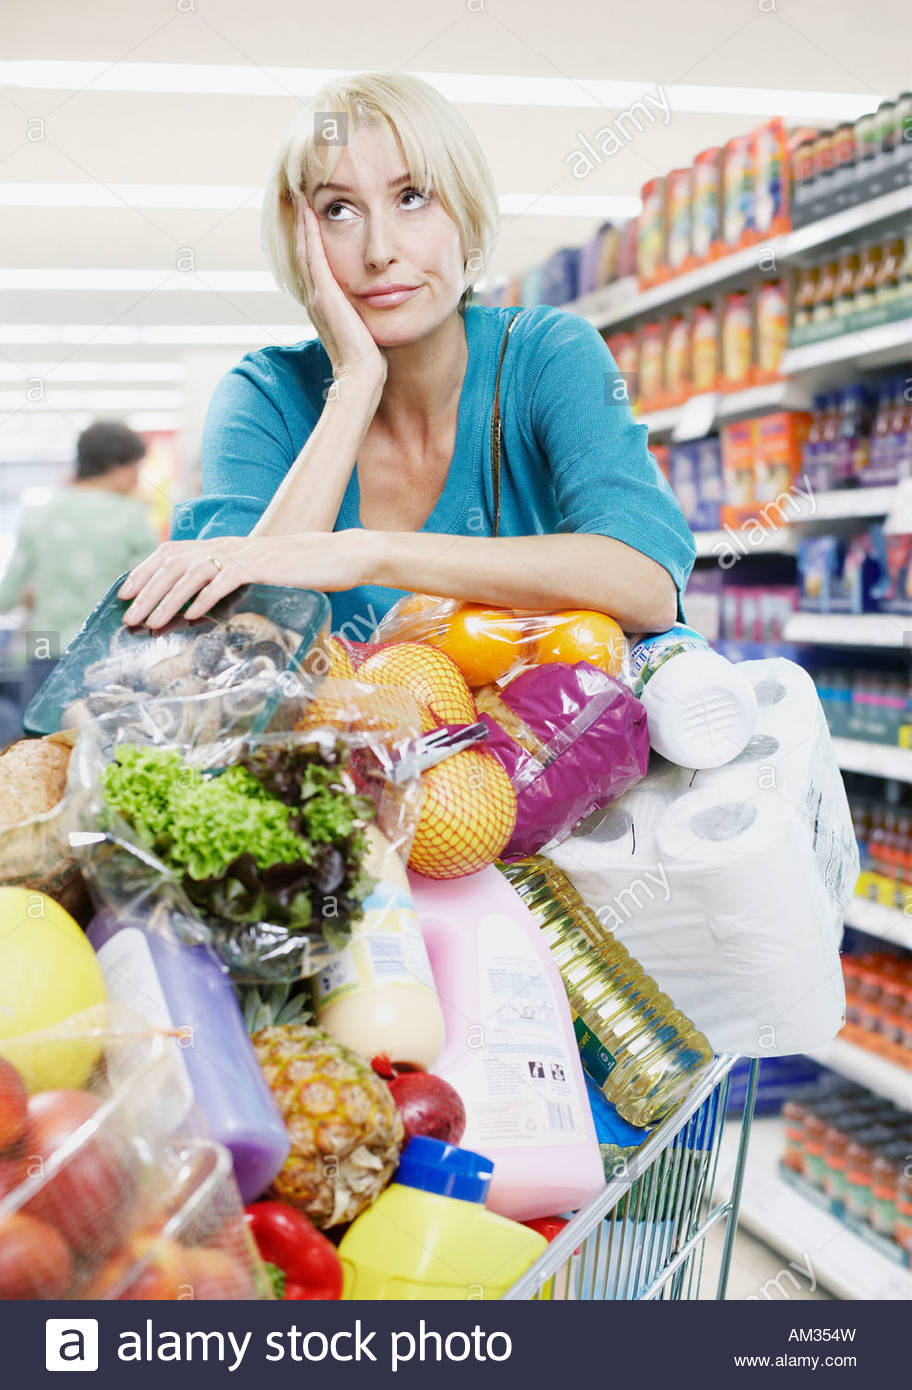 Woman with shopping trolley full of groceries - Stock Image